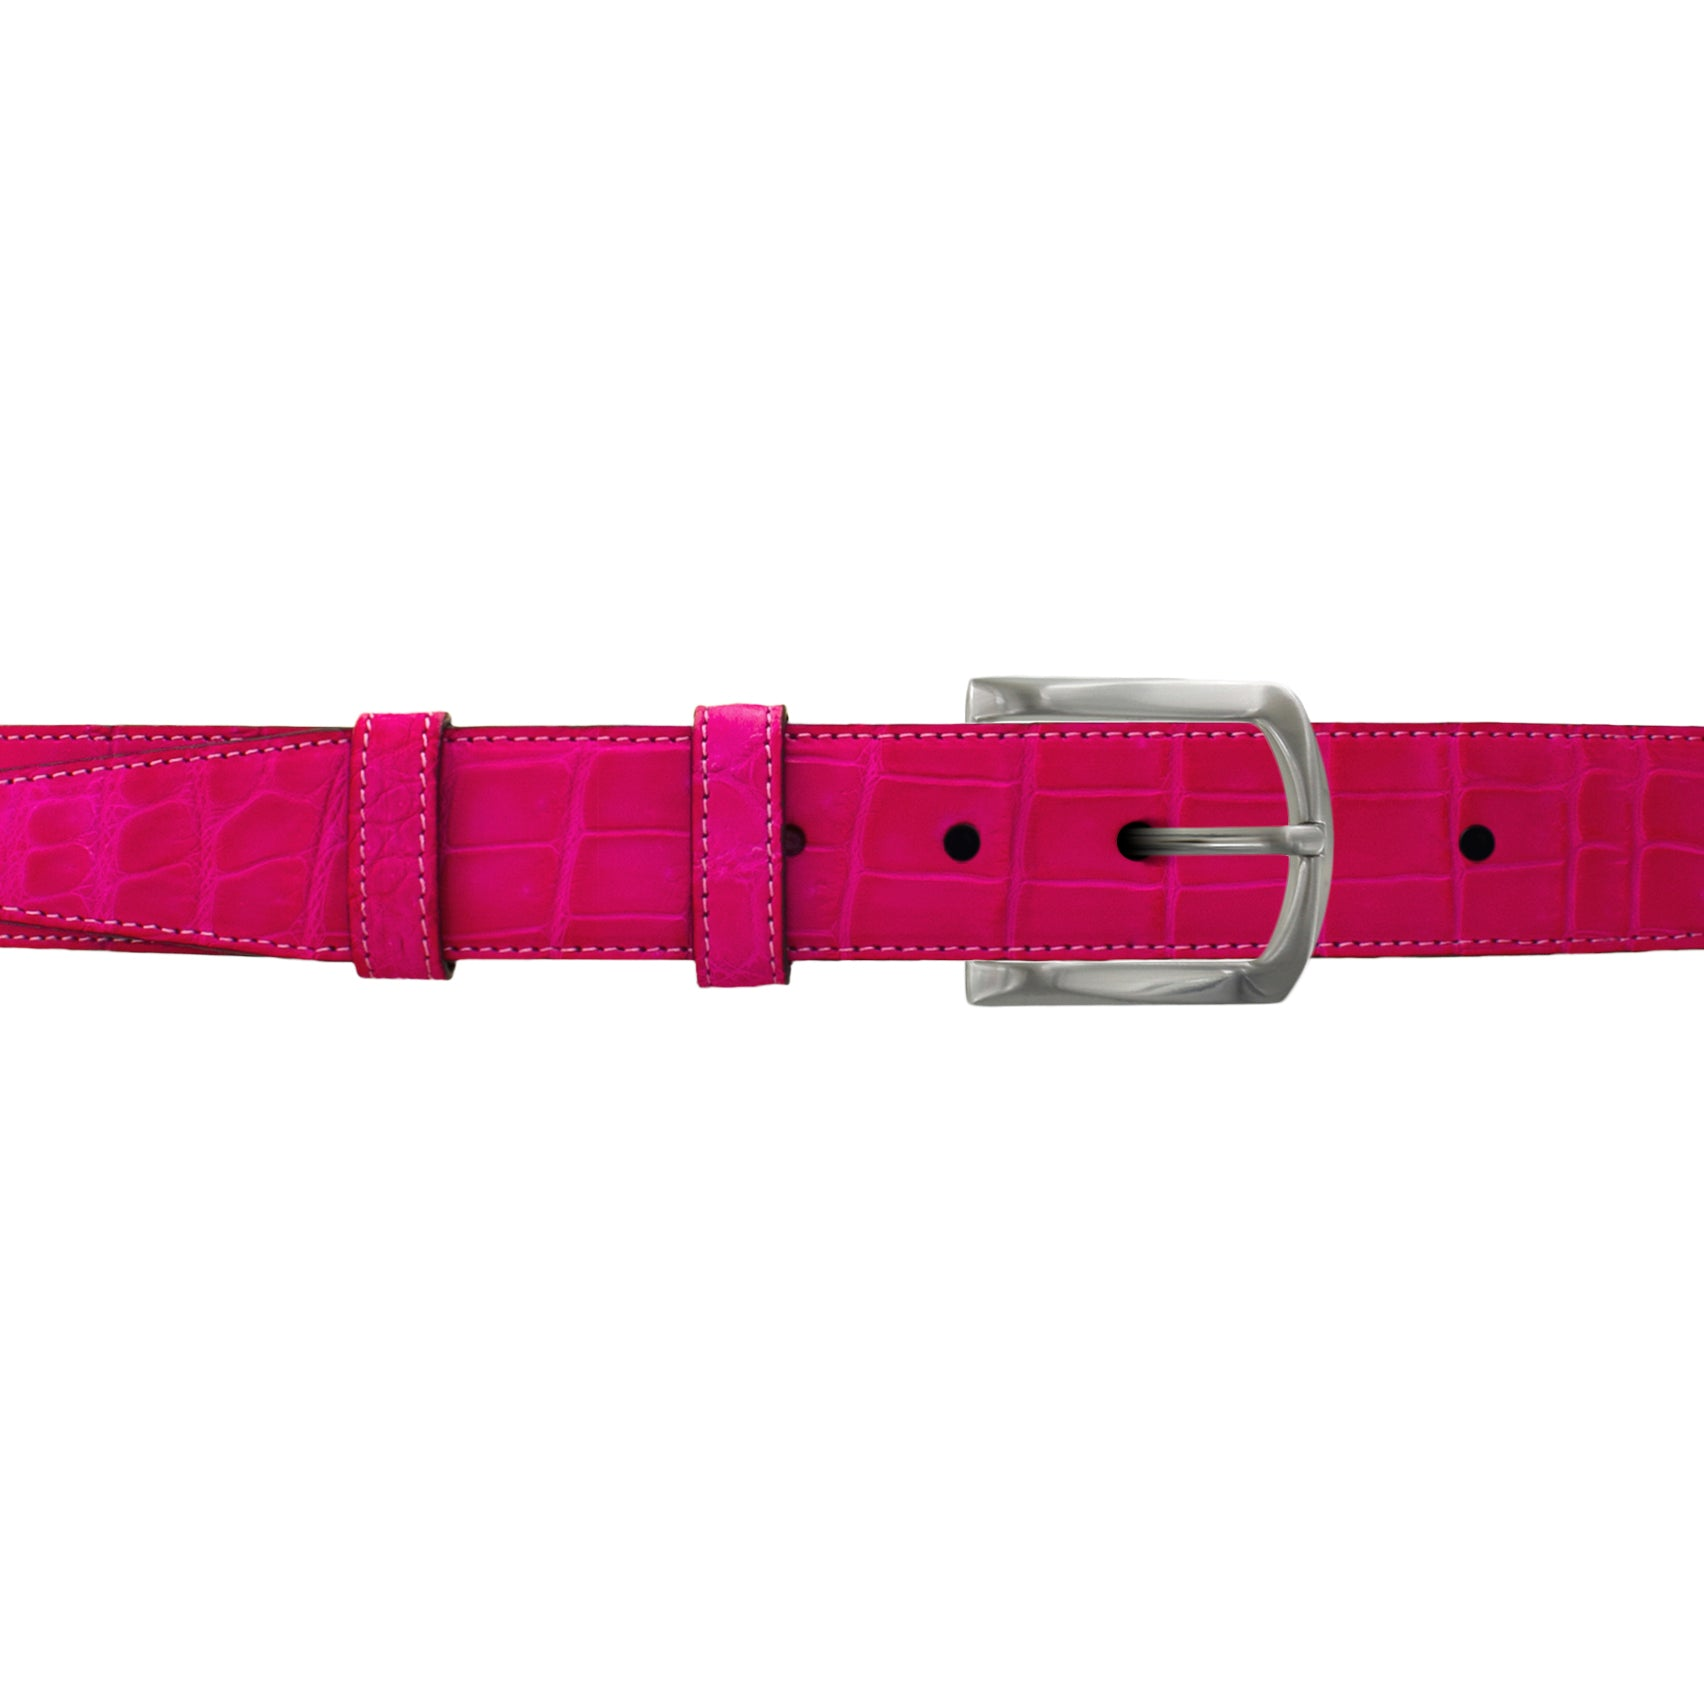 "1 1/4"" Fuchsia Seasonal Belt with Winston Dress Buckle in Matt Nickel"